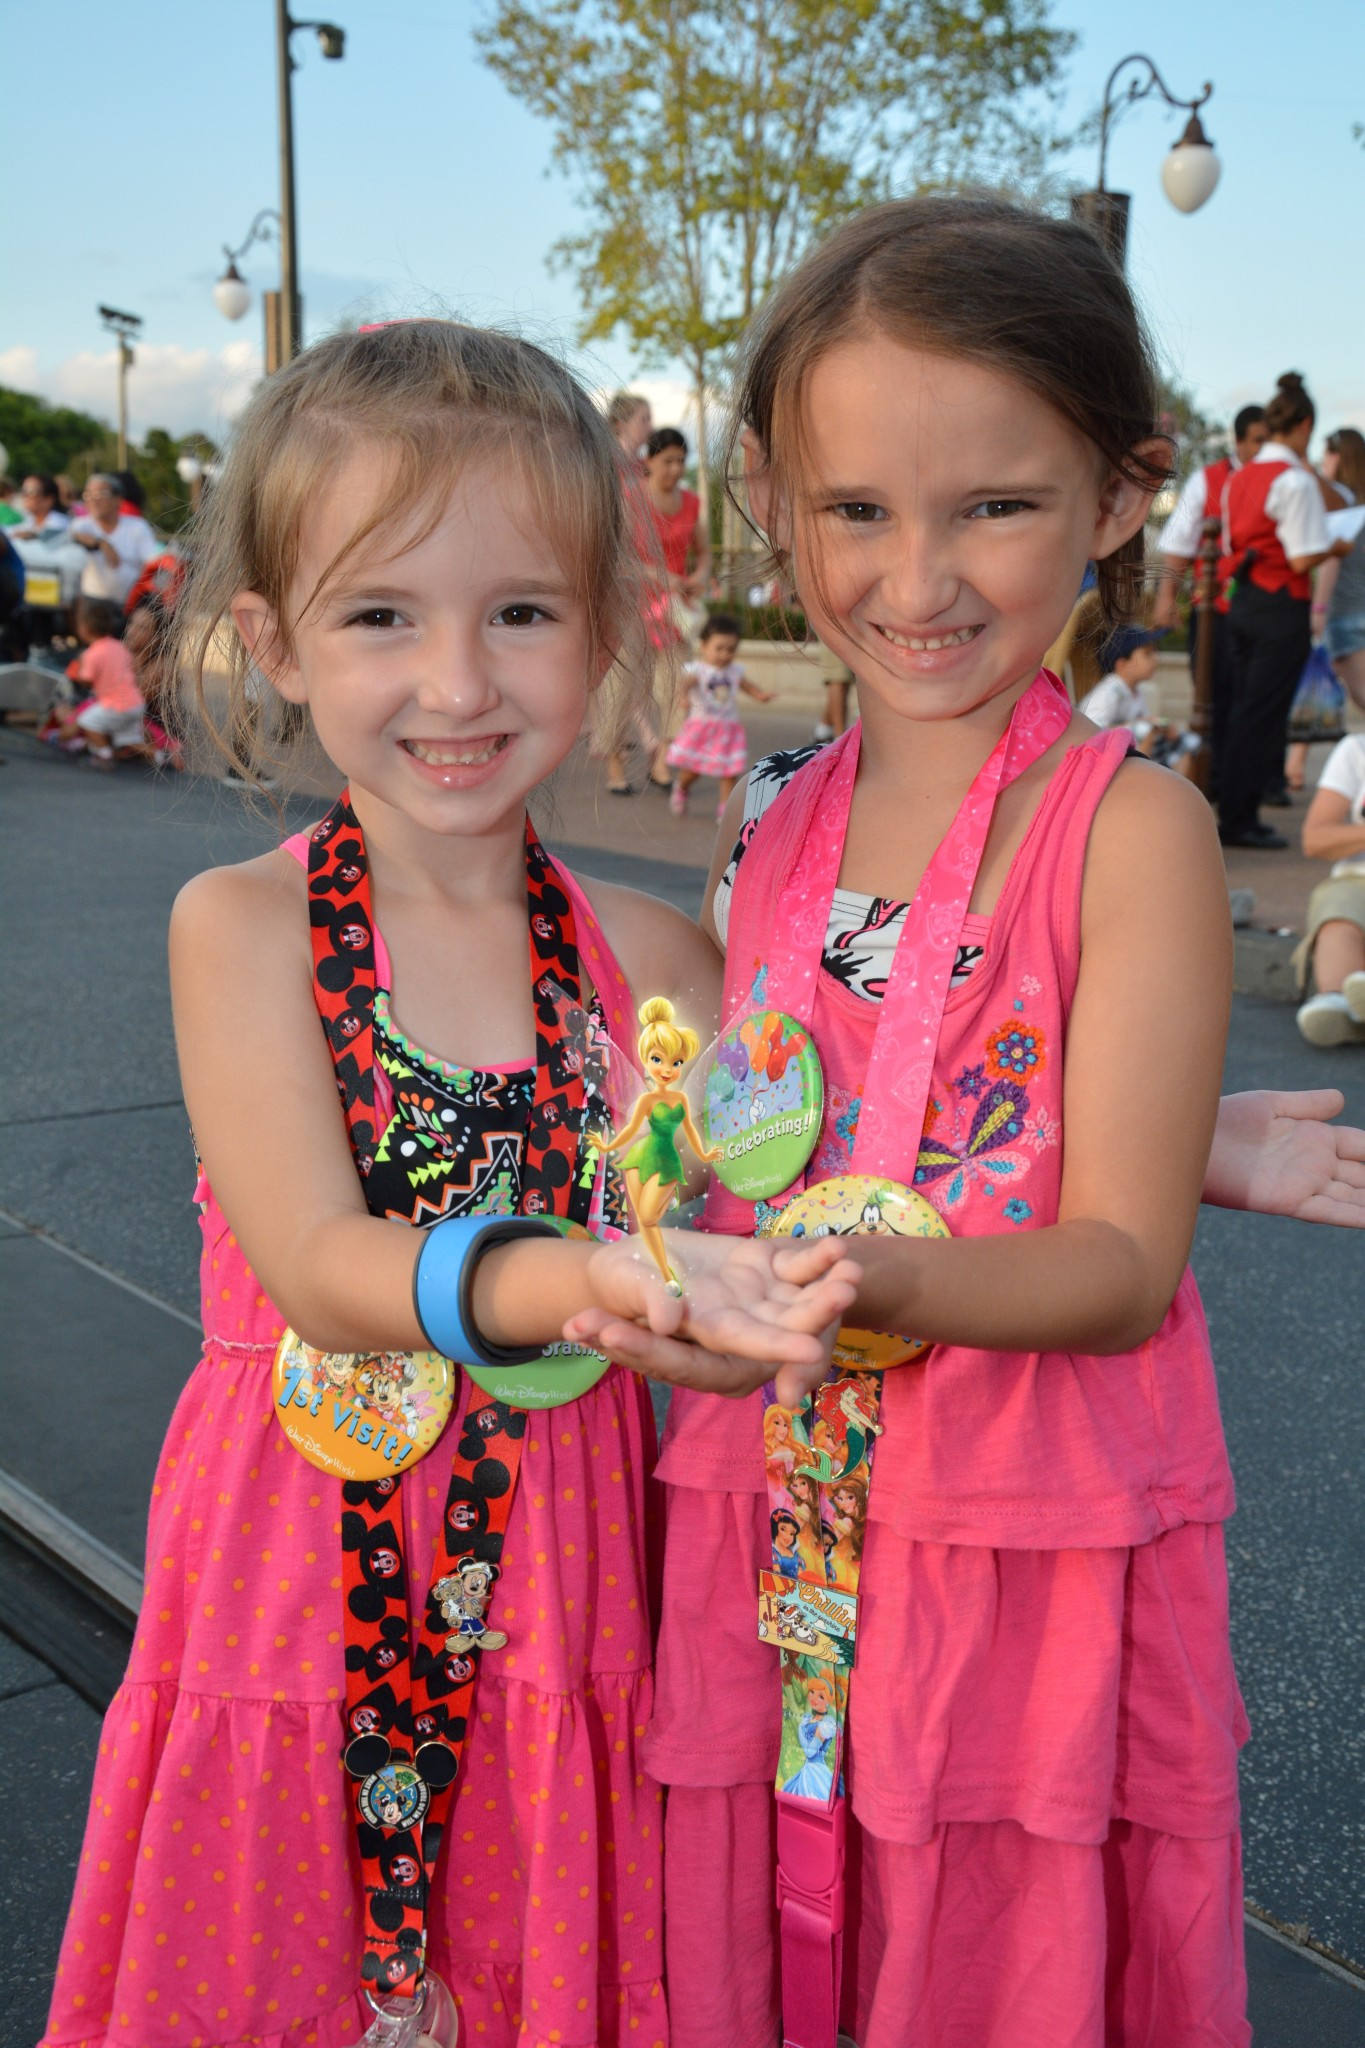 The girls visiting the Magic Kingdom with Tinker Bell